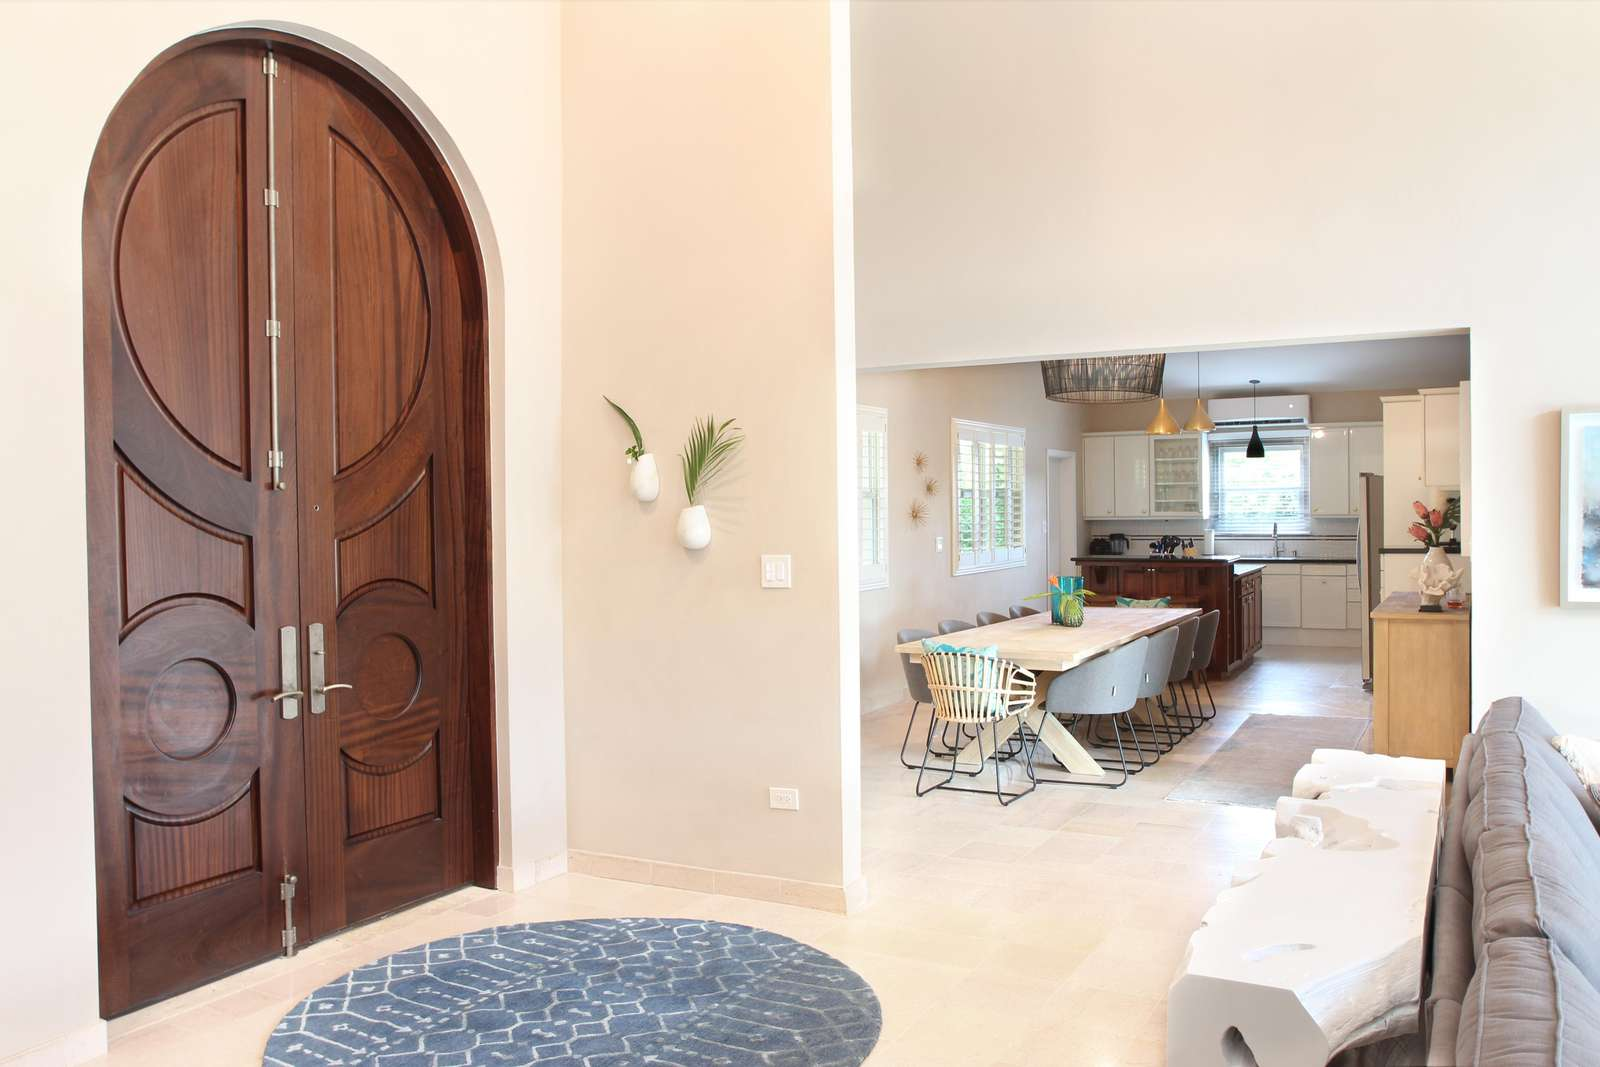 Entry toward Dining and kitchen area